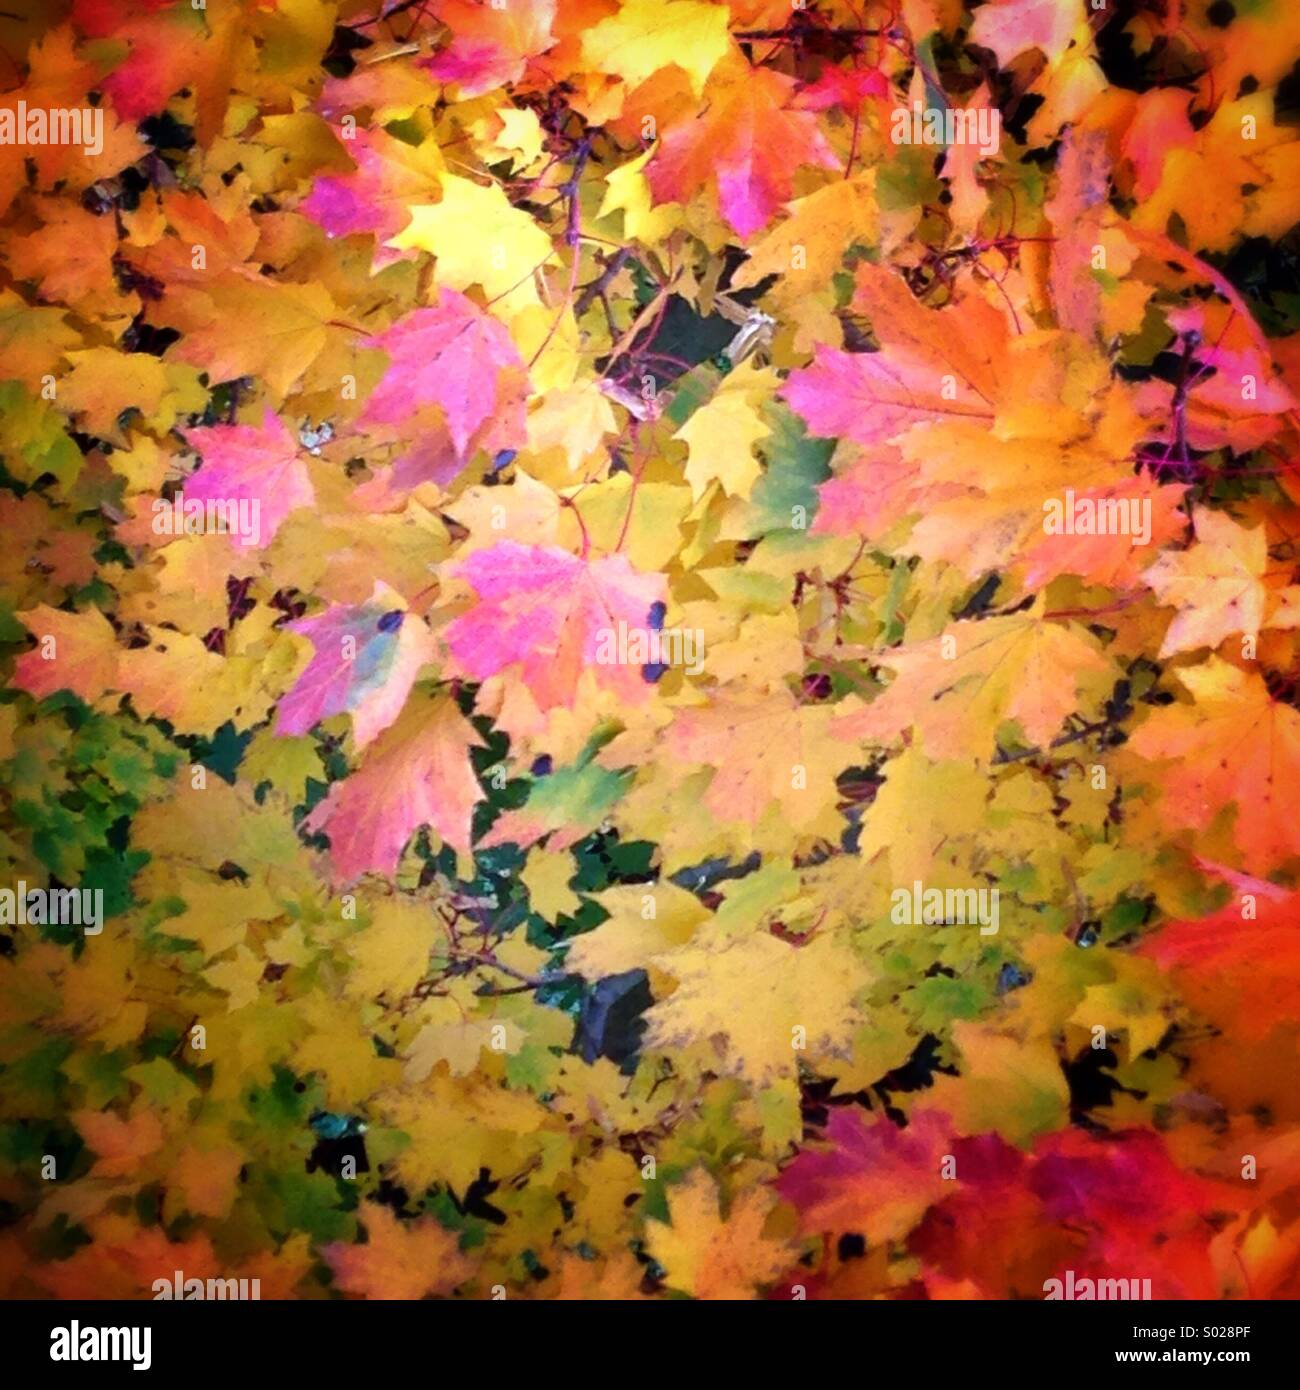 Fall colors emanate from the leaves of trees in a field in Northern Poland. - Stock Image